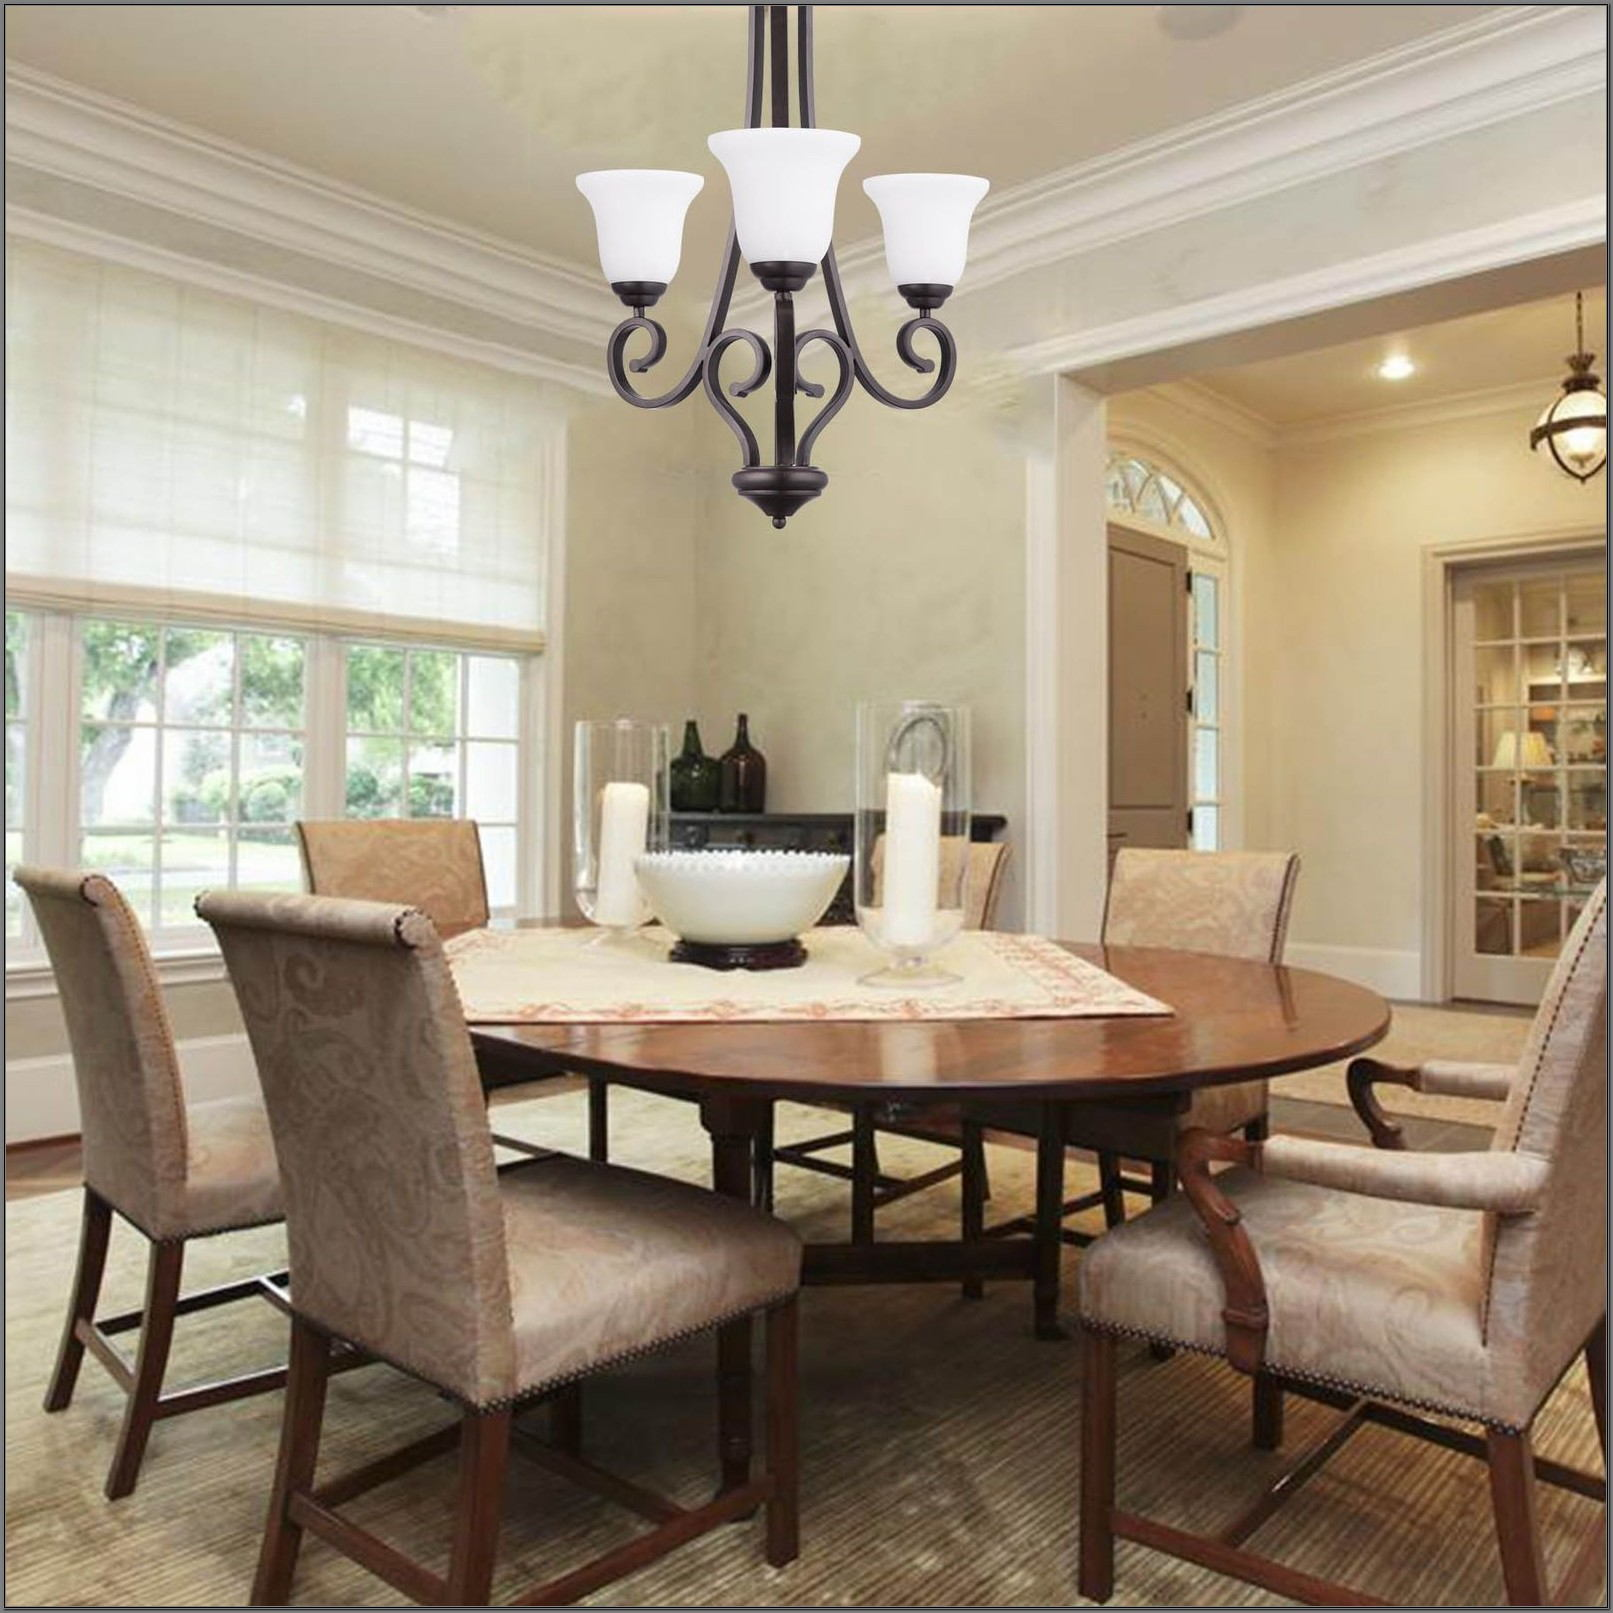 3 Light Dining Room Fixture